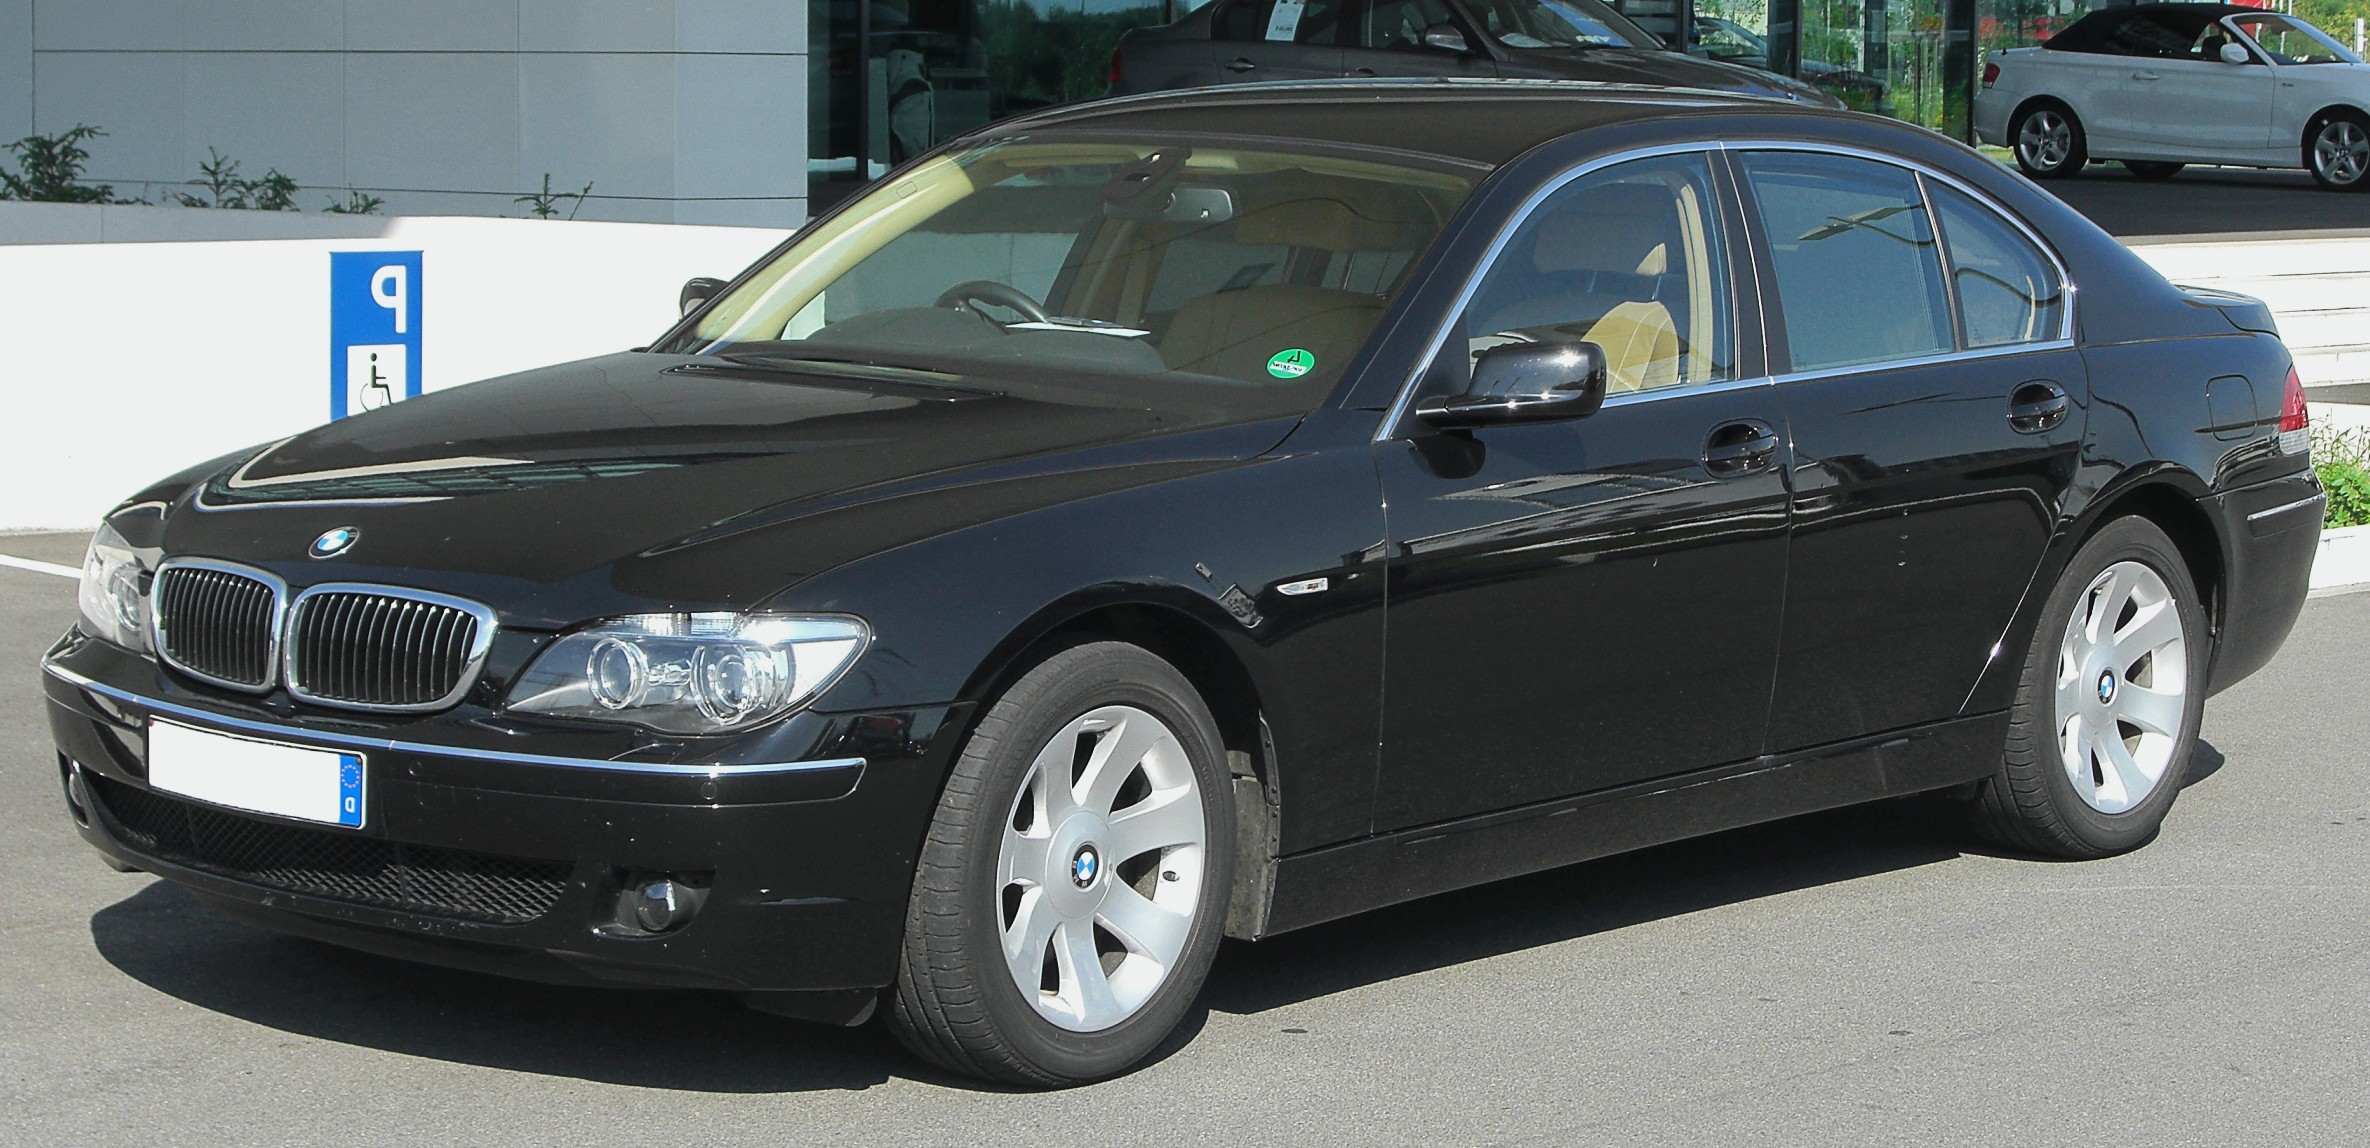 Bmw 730 2014 Review Amazing Pictures And Images Look